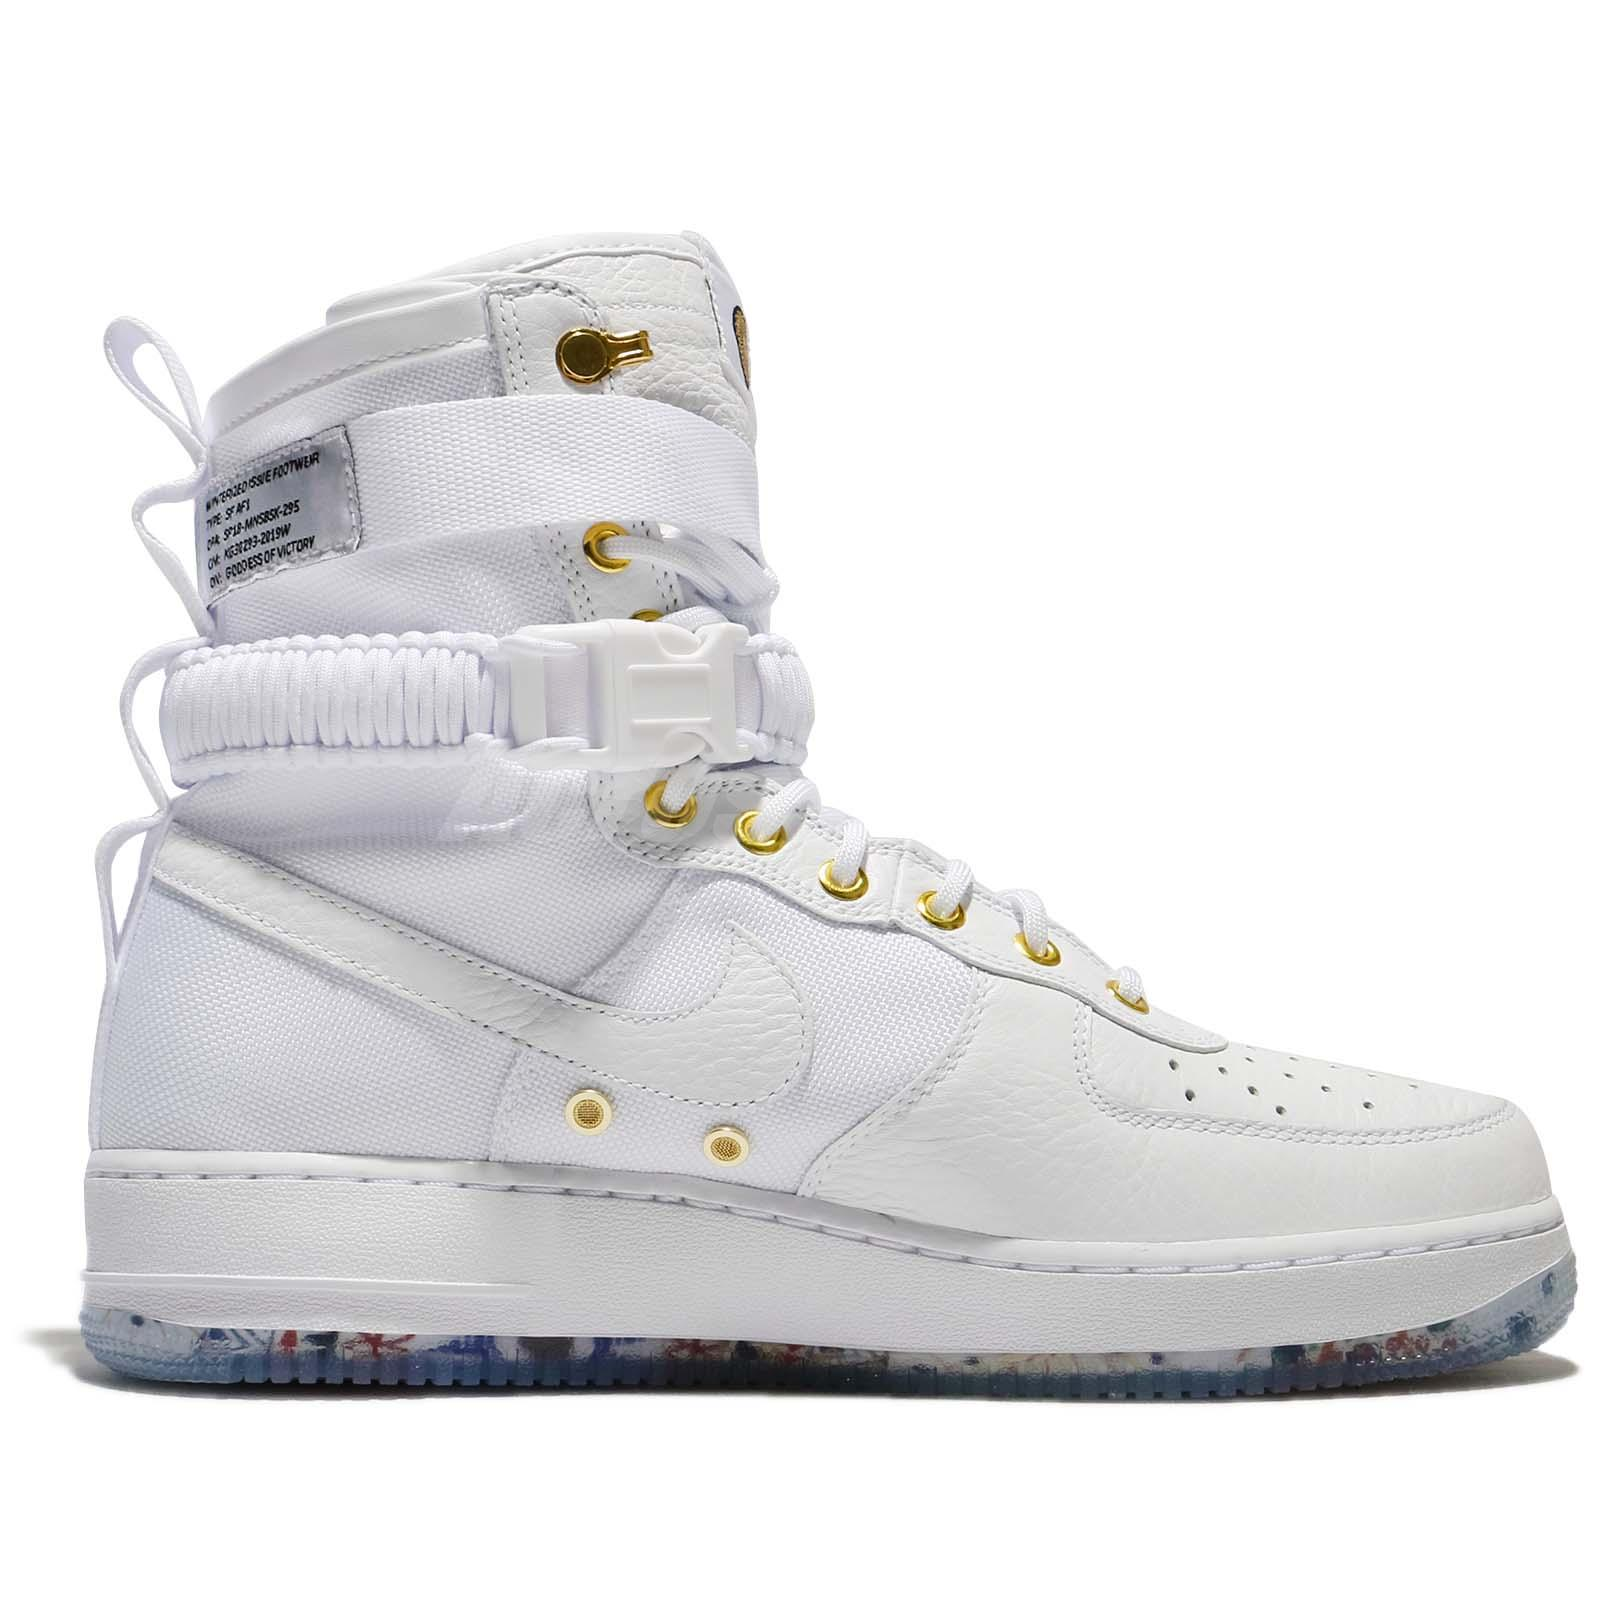 nike special field air force 1 lny nz